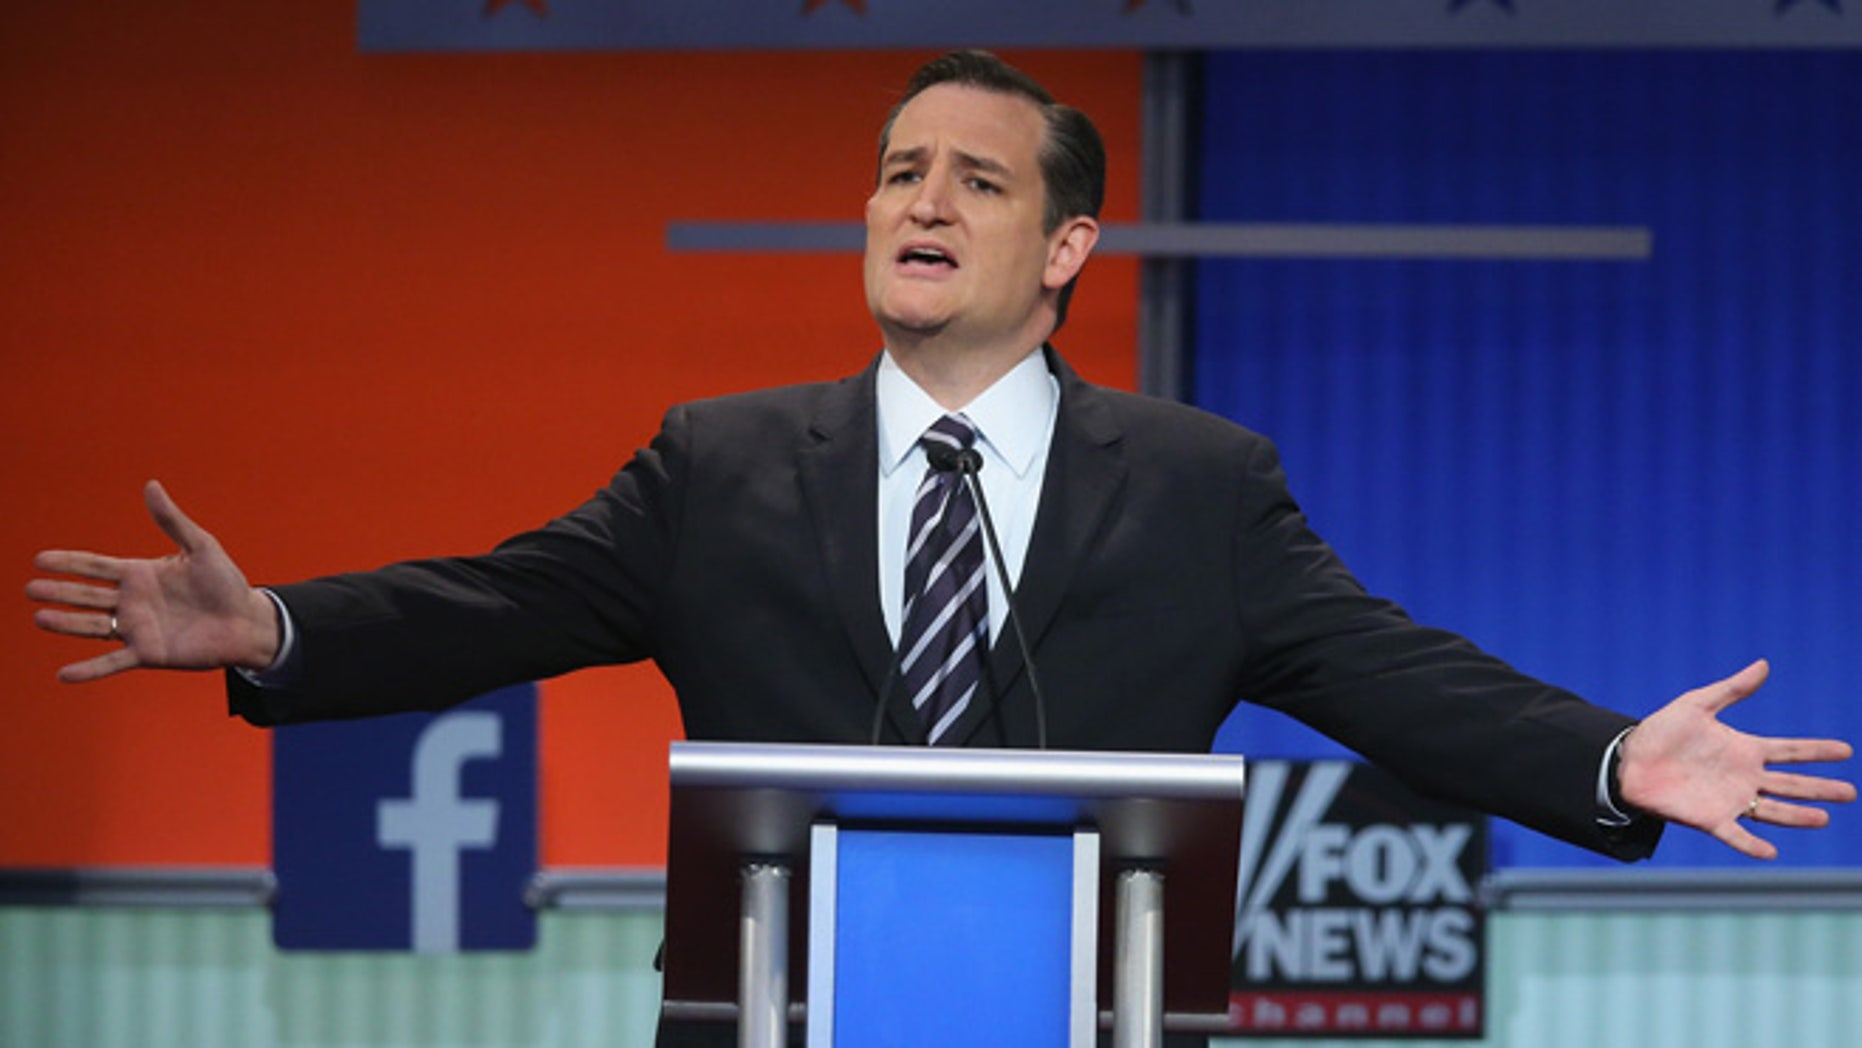 Republican presidential candidate Sen. Ted Cruz (R-TX) fields a question during the first Republican presidential debate hosted by Fox News and Facebook at the Quicken Loans Arena on August 6, 2015 in Cleveland, Ohio. (Photo by Scott Olson/Getty Images)